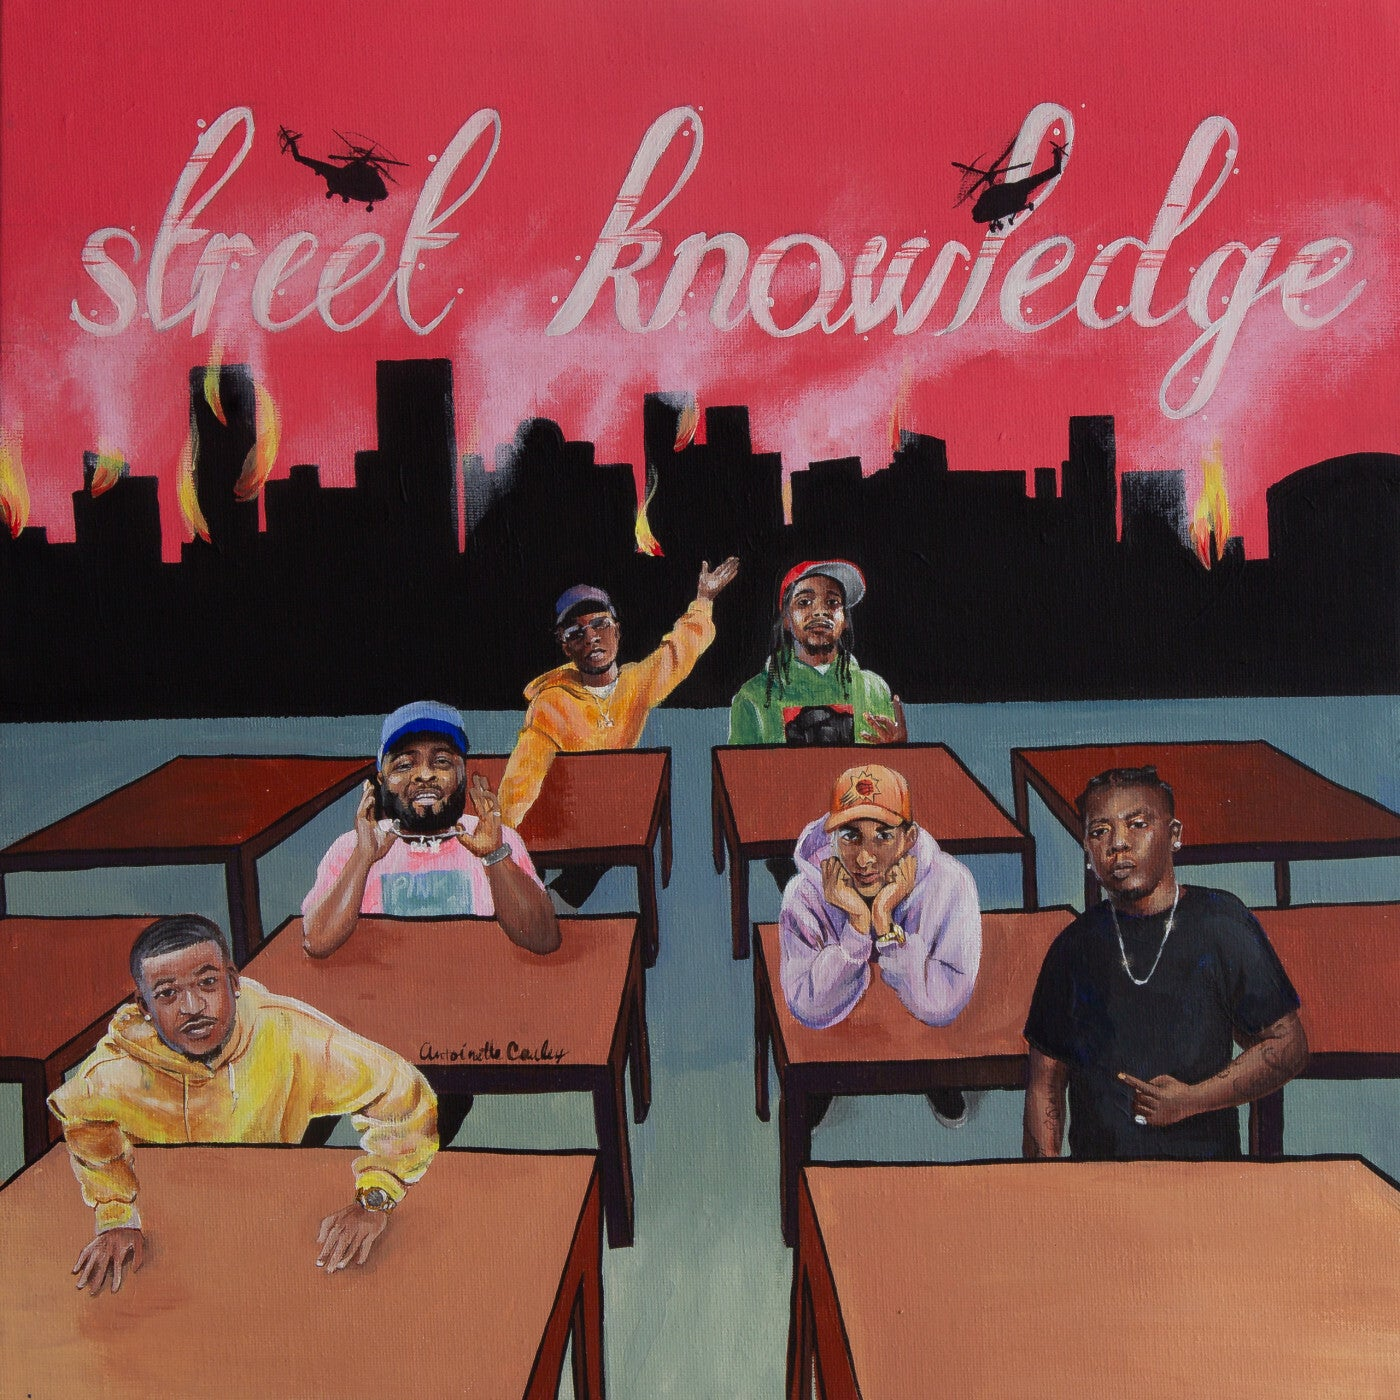 Street Knowledge (Extended)